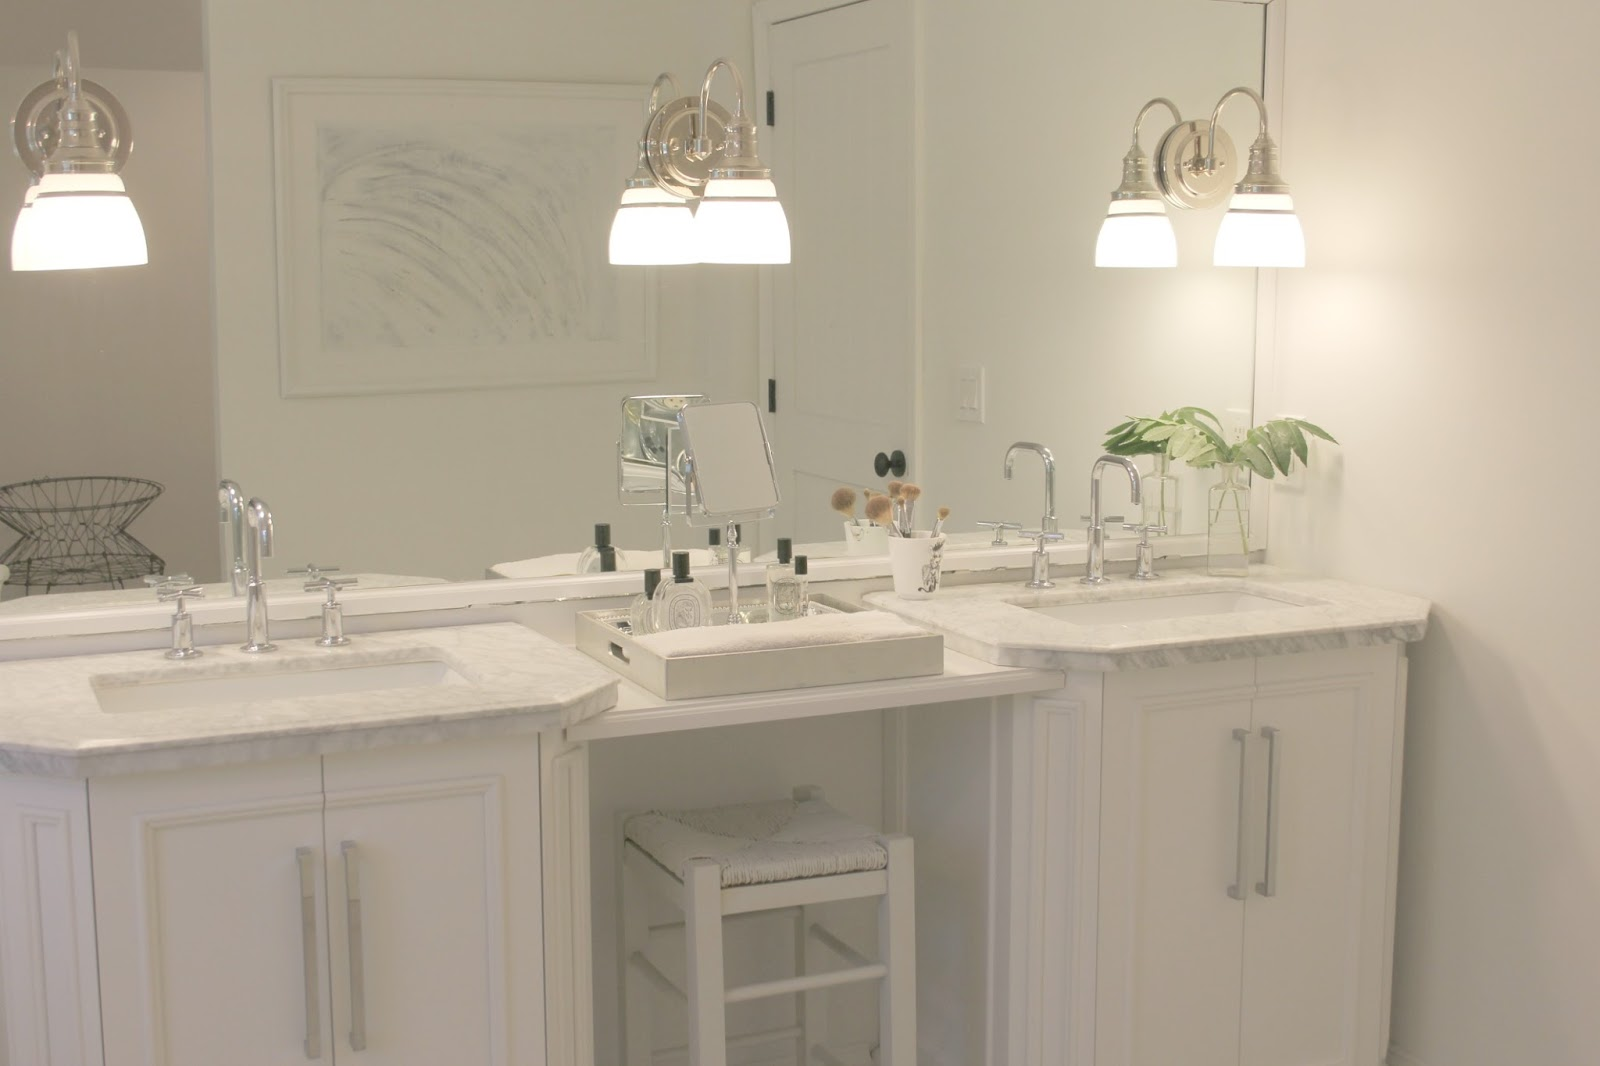 White vanities with carrara marble tops in renovated bathroom. Come see renovation photos in Before & After: My Home Renovation.